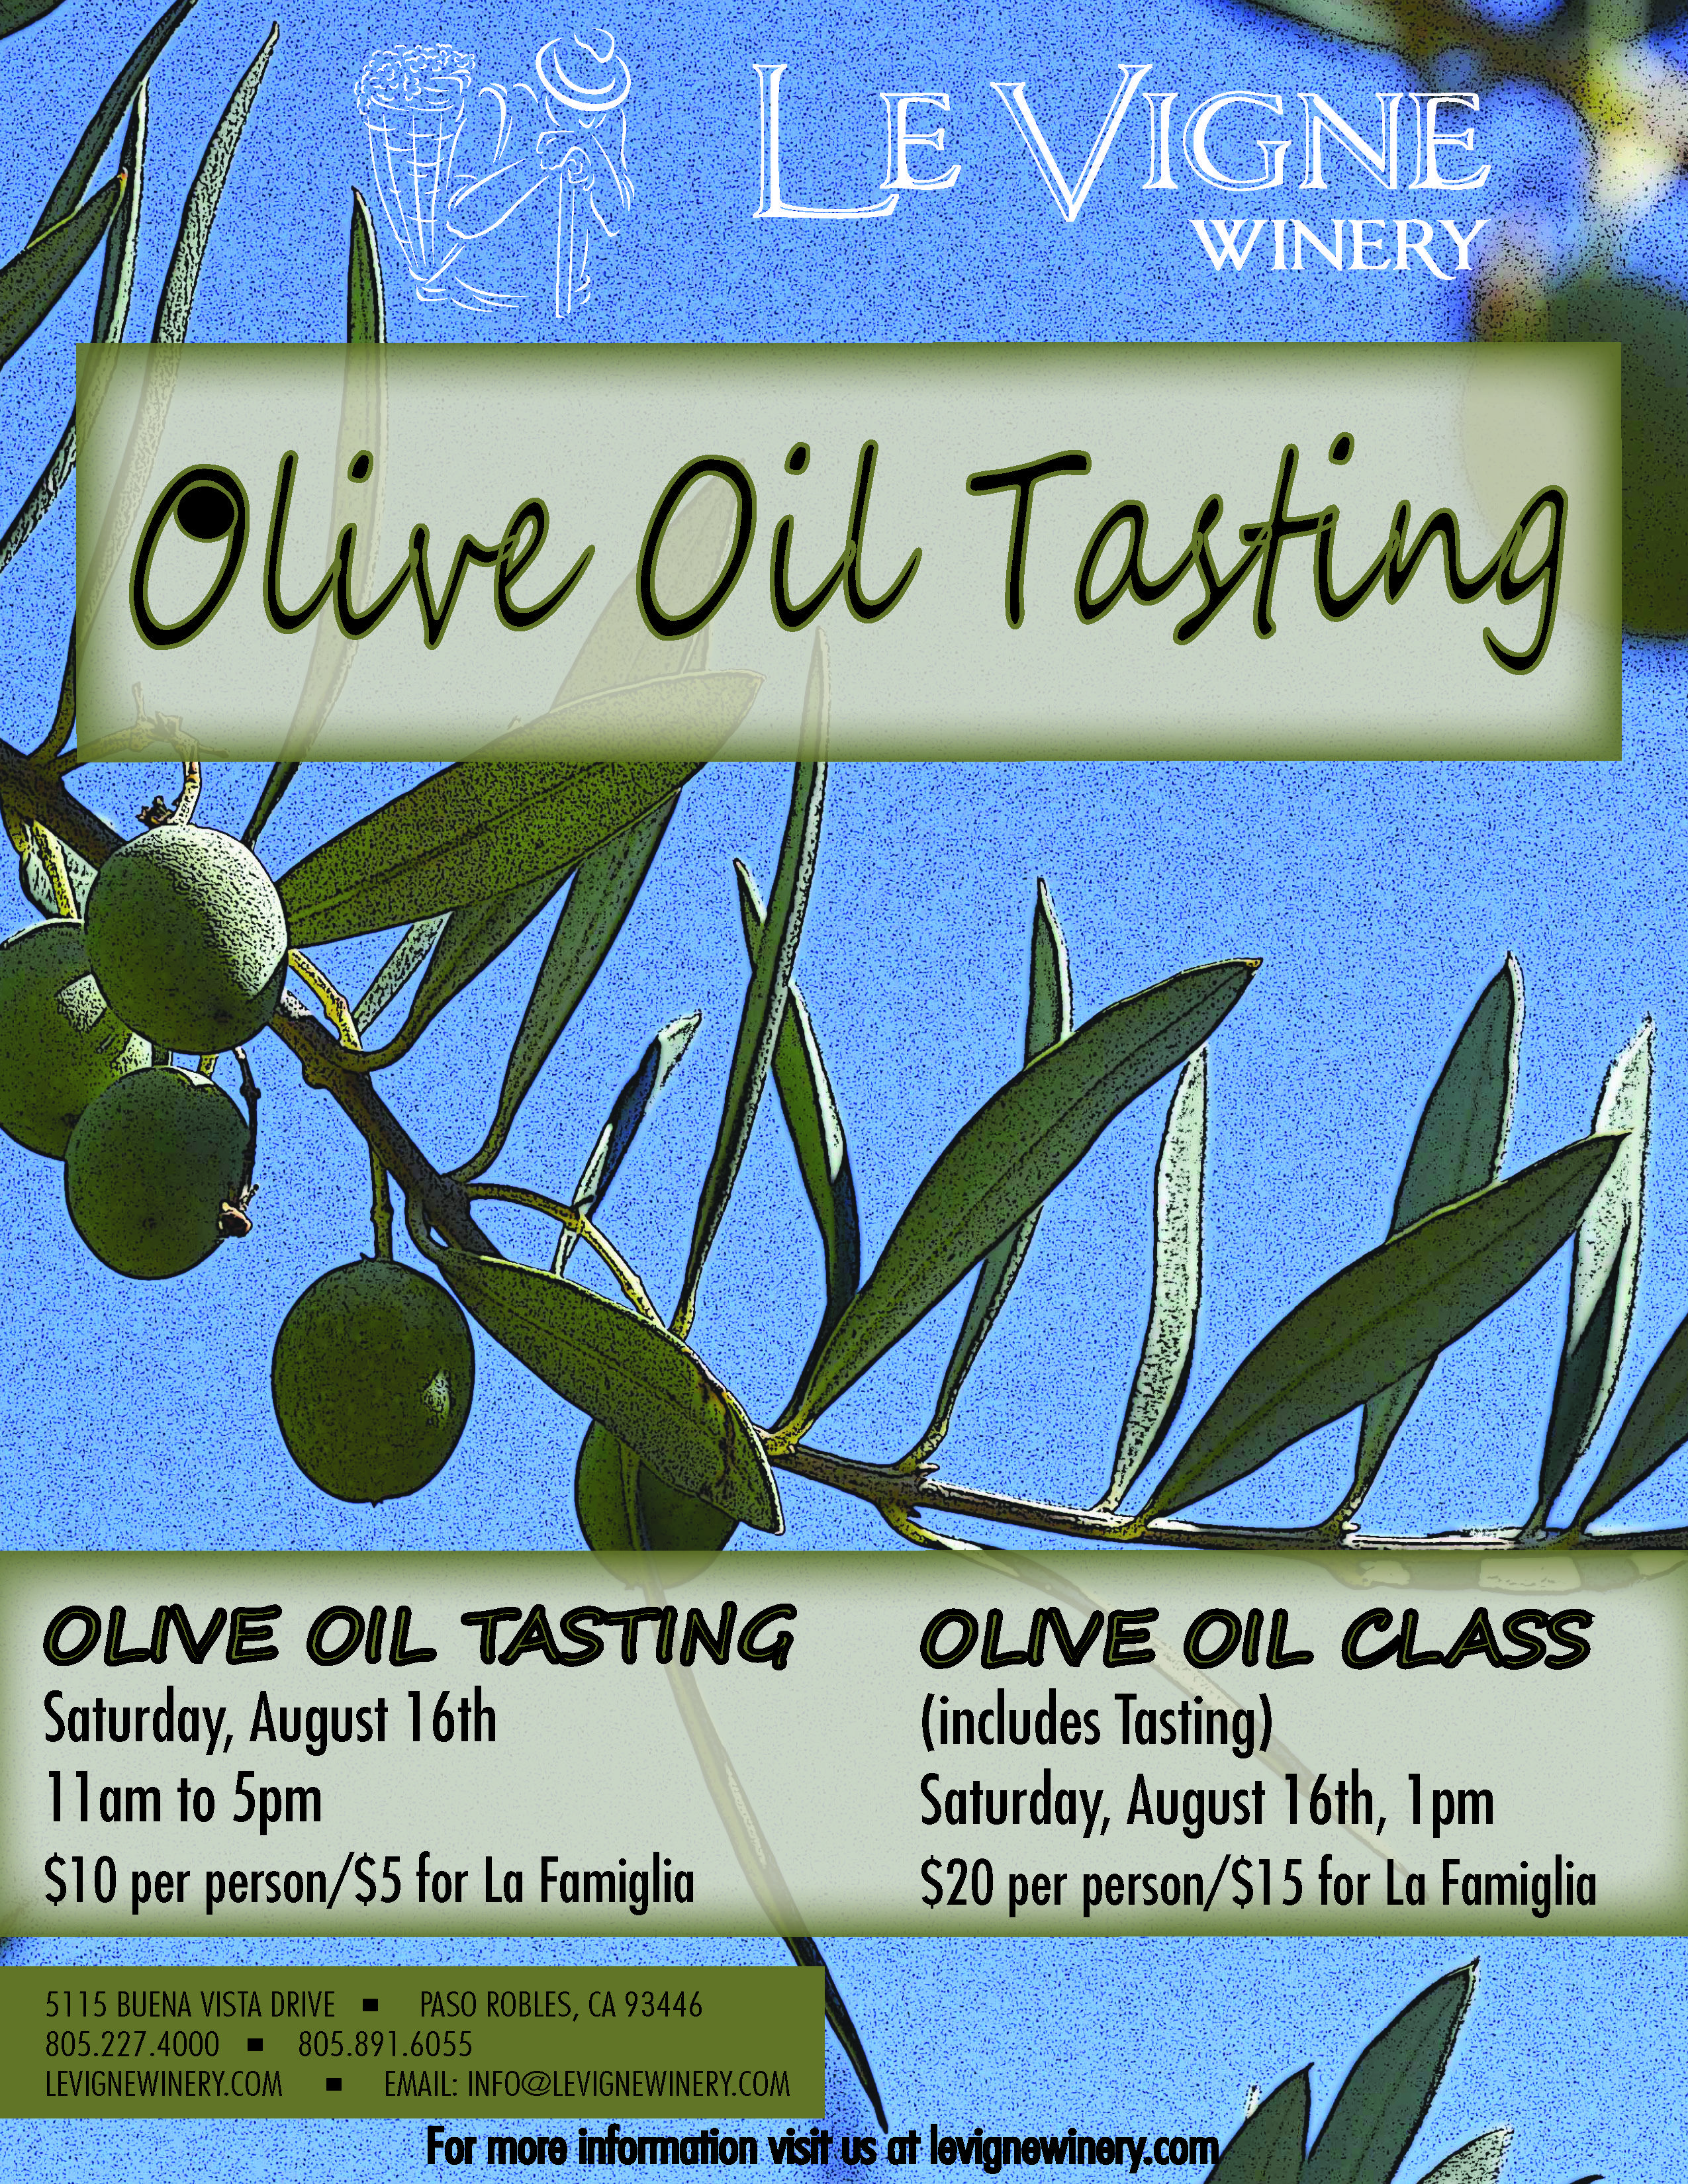 Love oliveoil want to learn more levignewinery is